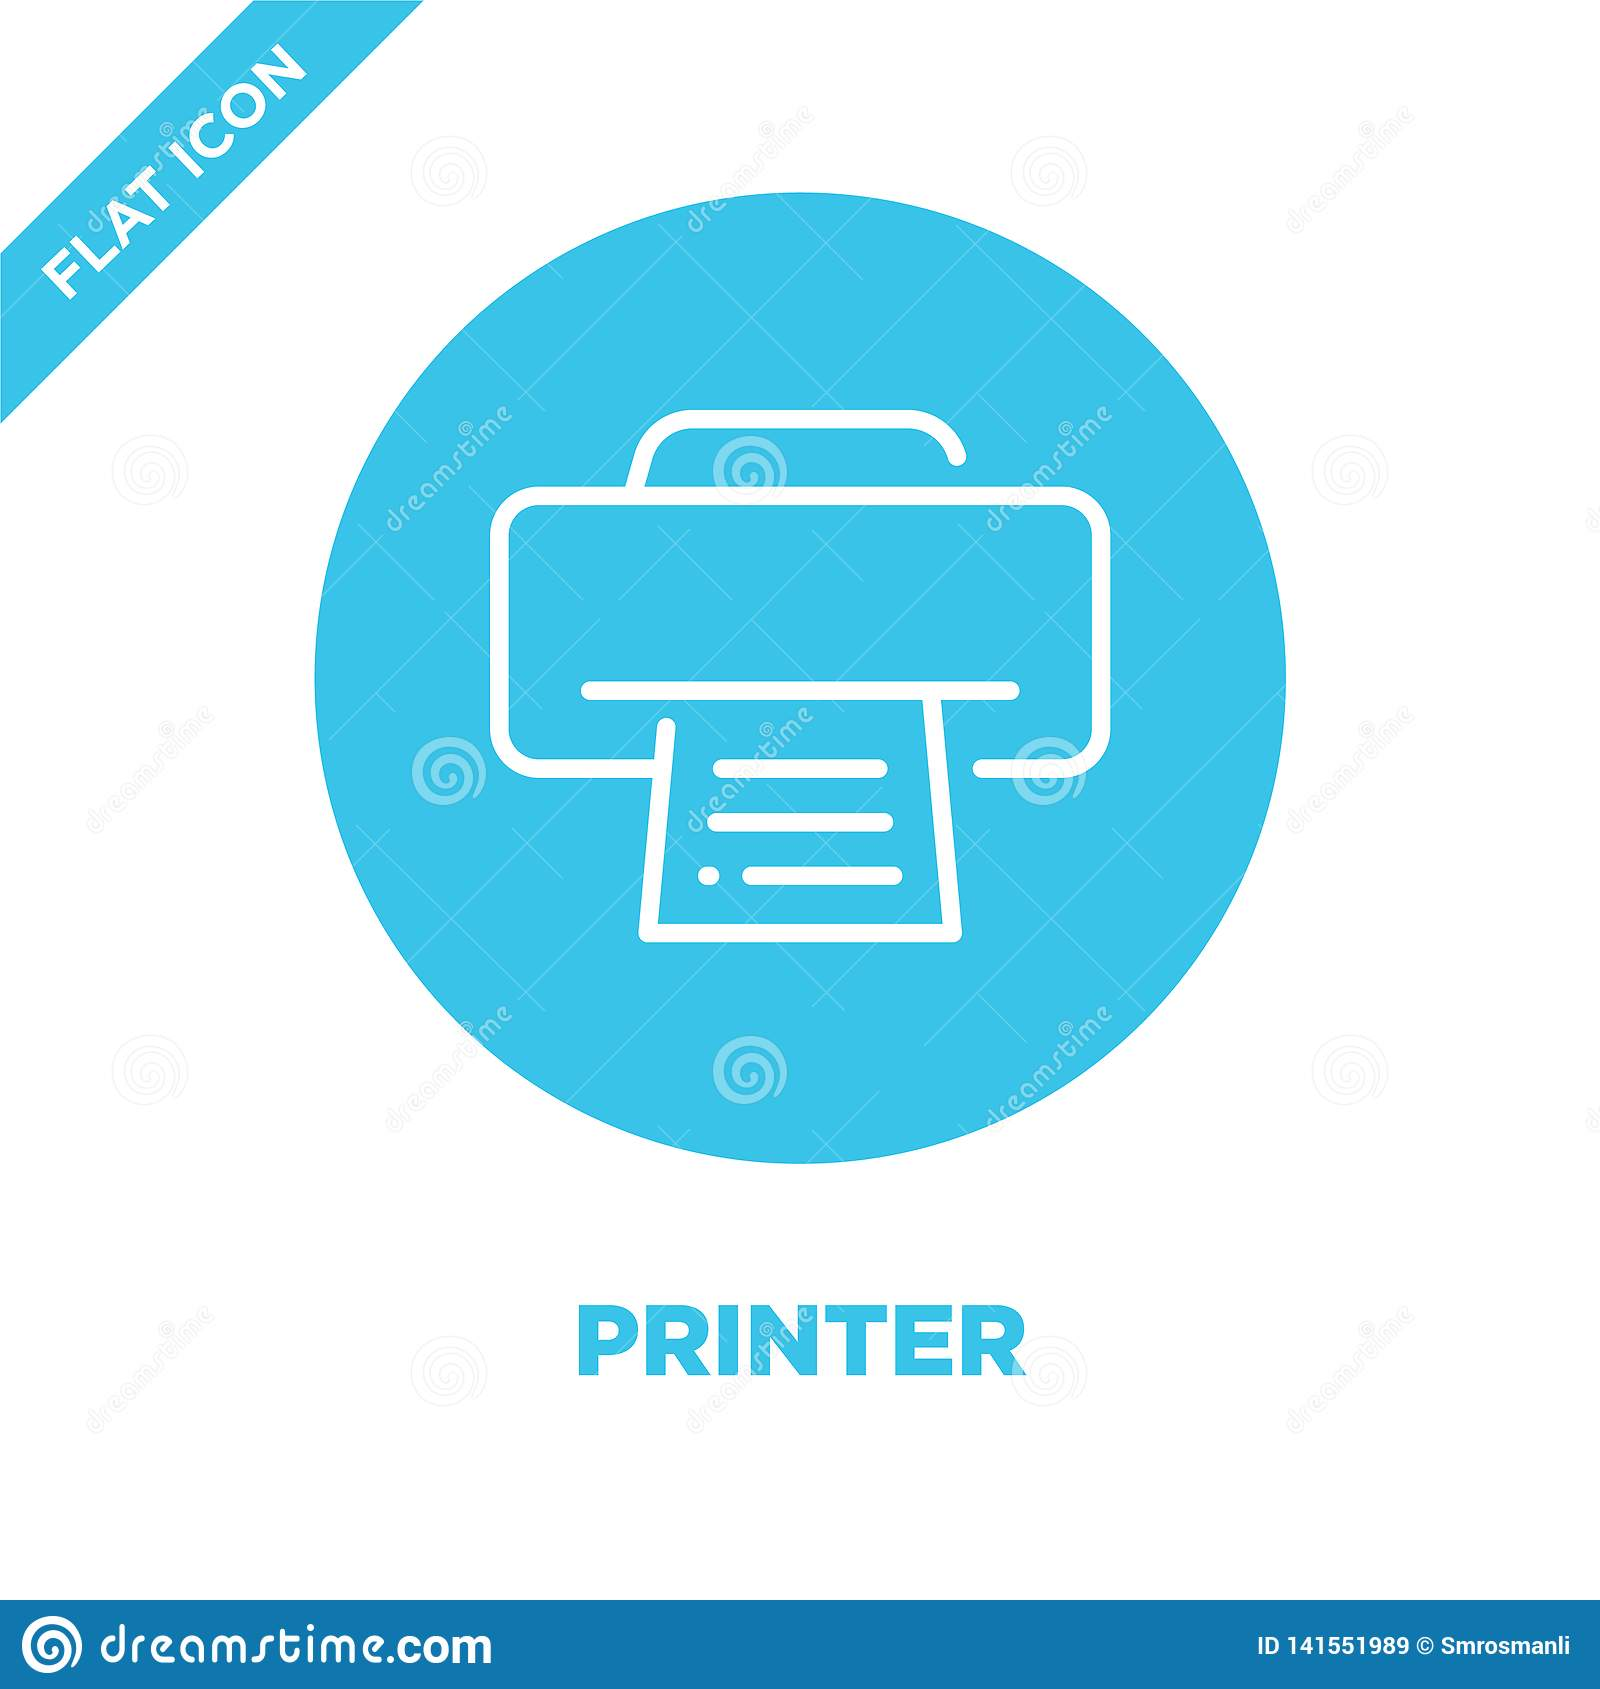 printer icon vector. Thin line printer outline icon vector illustration.printer symbol for use on web and mobile apps, logo, print